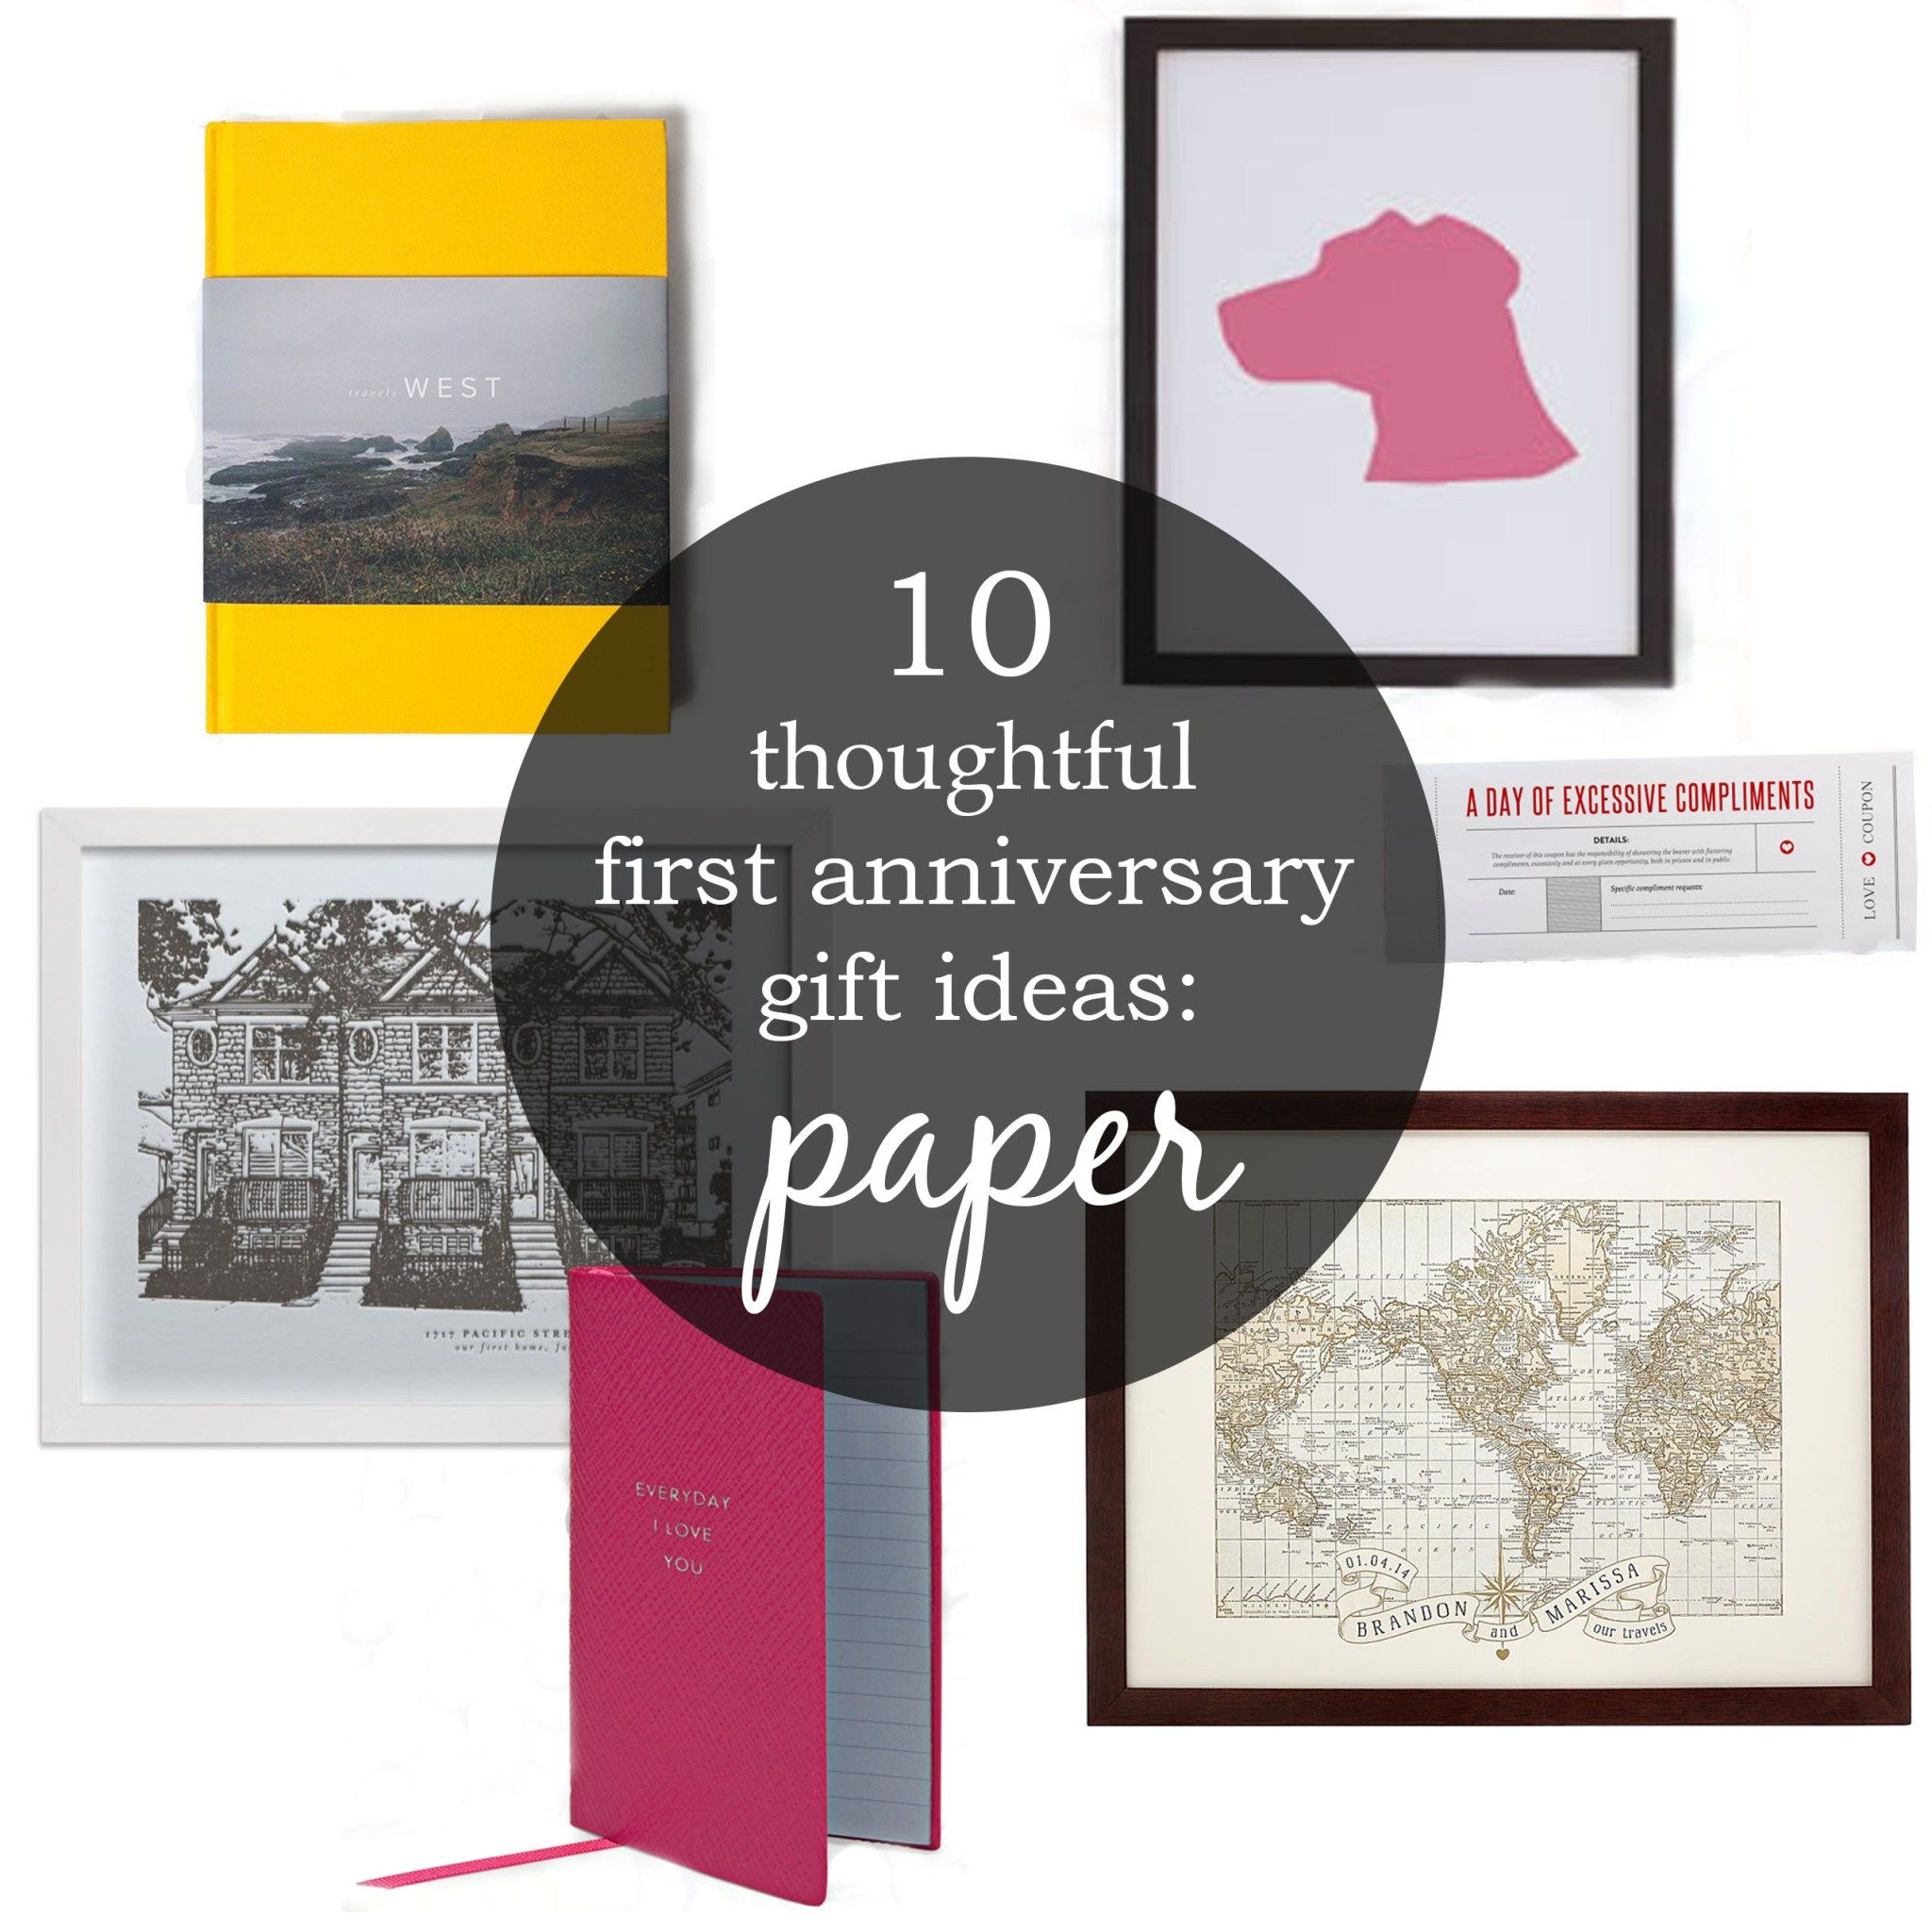 Thoughtful Wedding Gift Ideas: 10 Thoughtful First Anniversary Gift Ideas: Paper